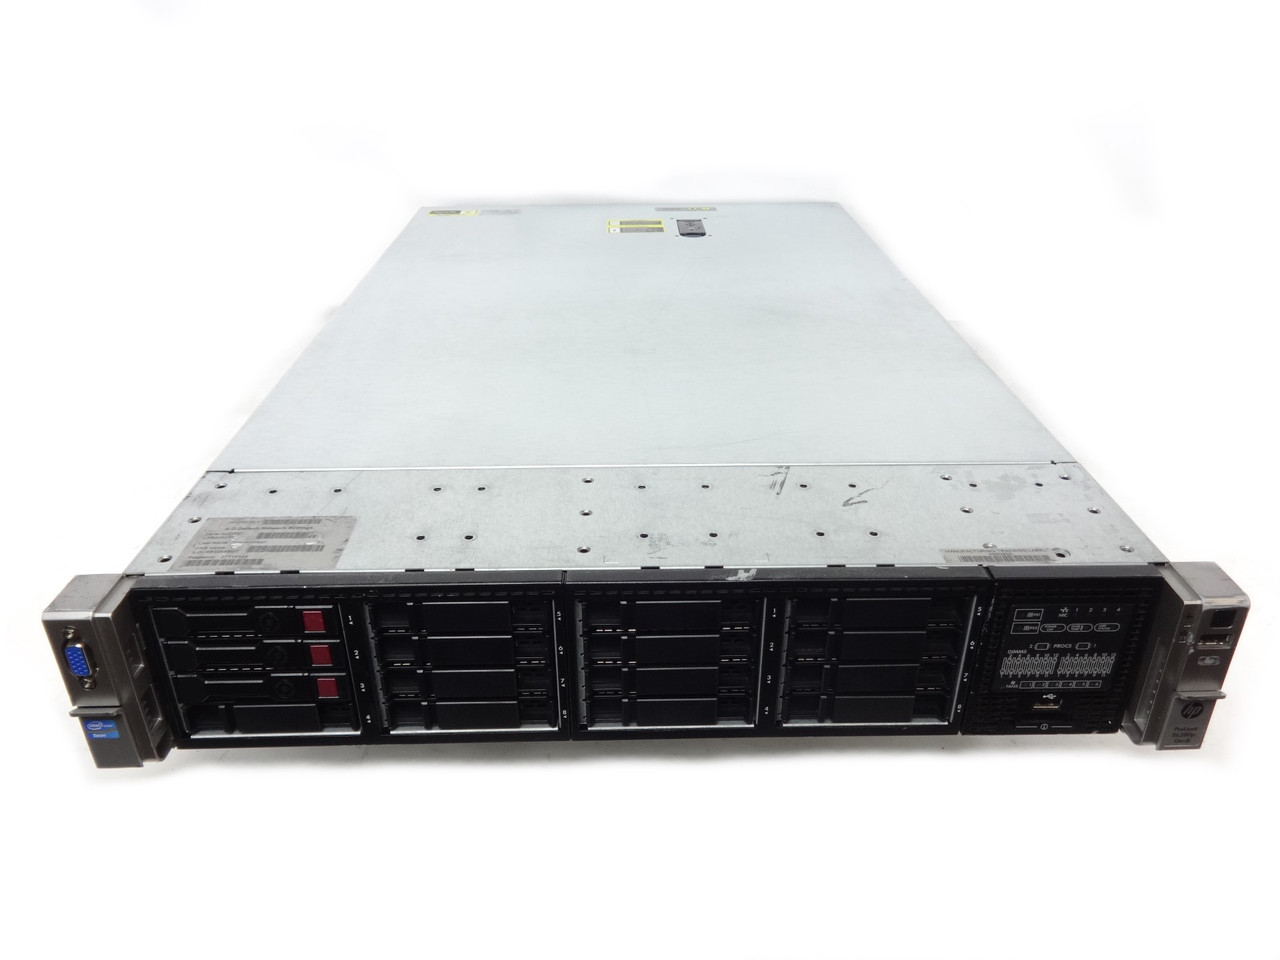 HP Proliant DL380P G8 16x 2.5' Server Build to Order